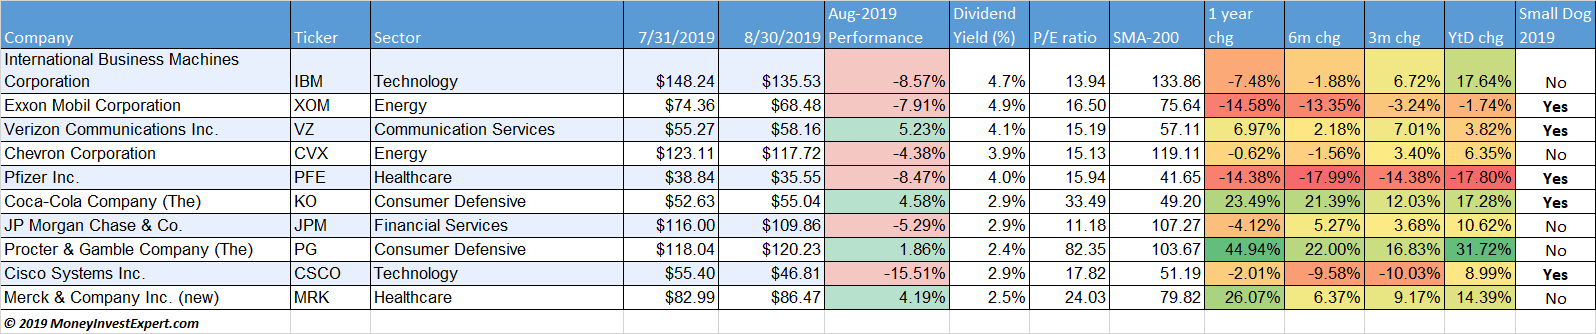 Dogs of the dow august 2019